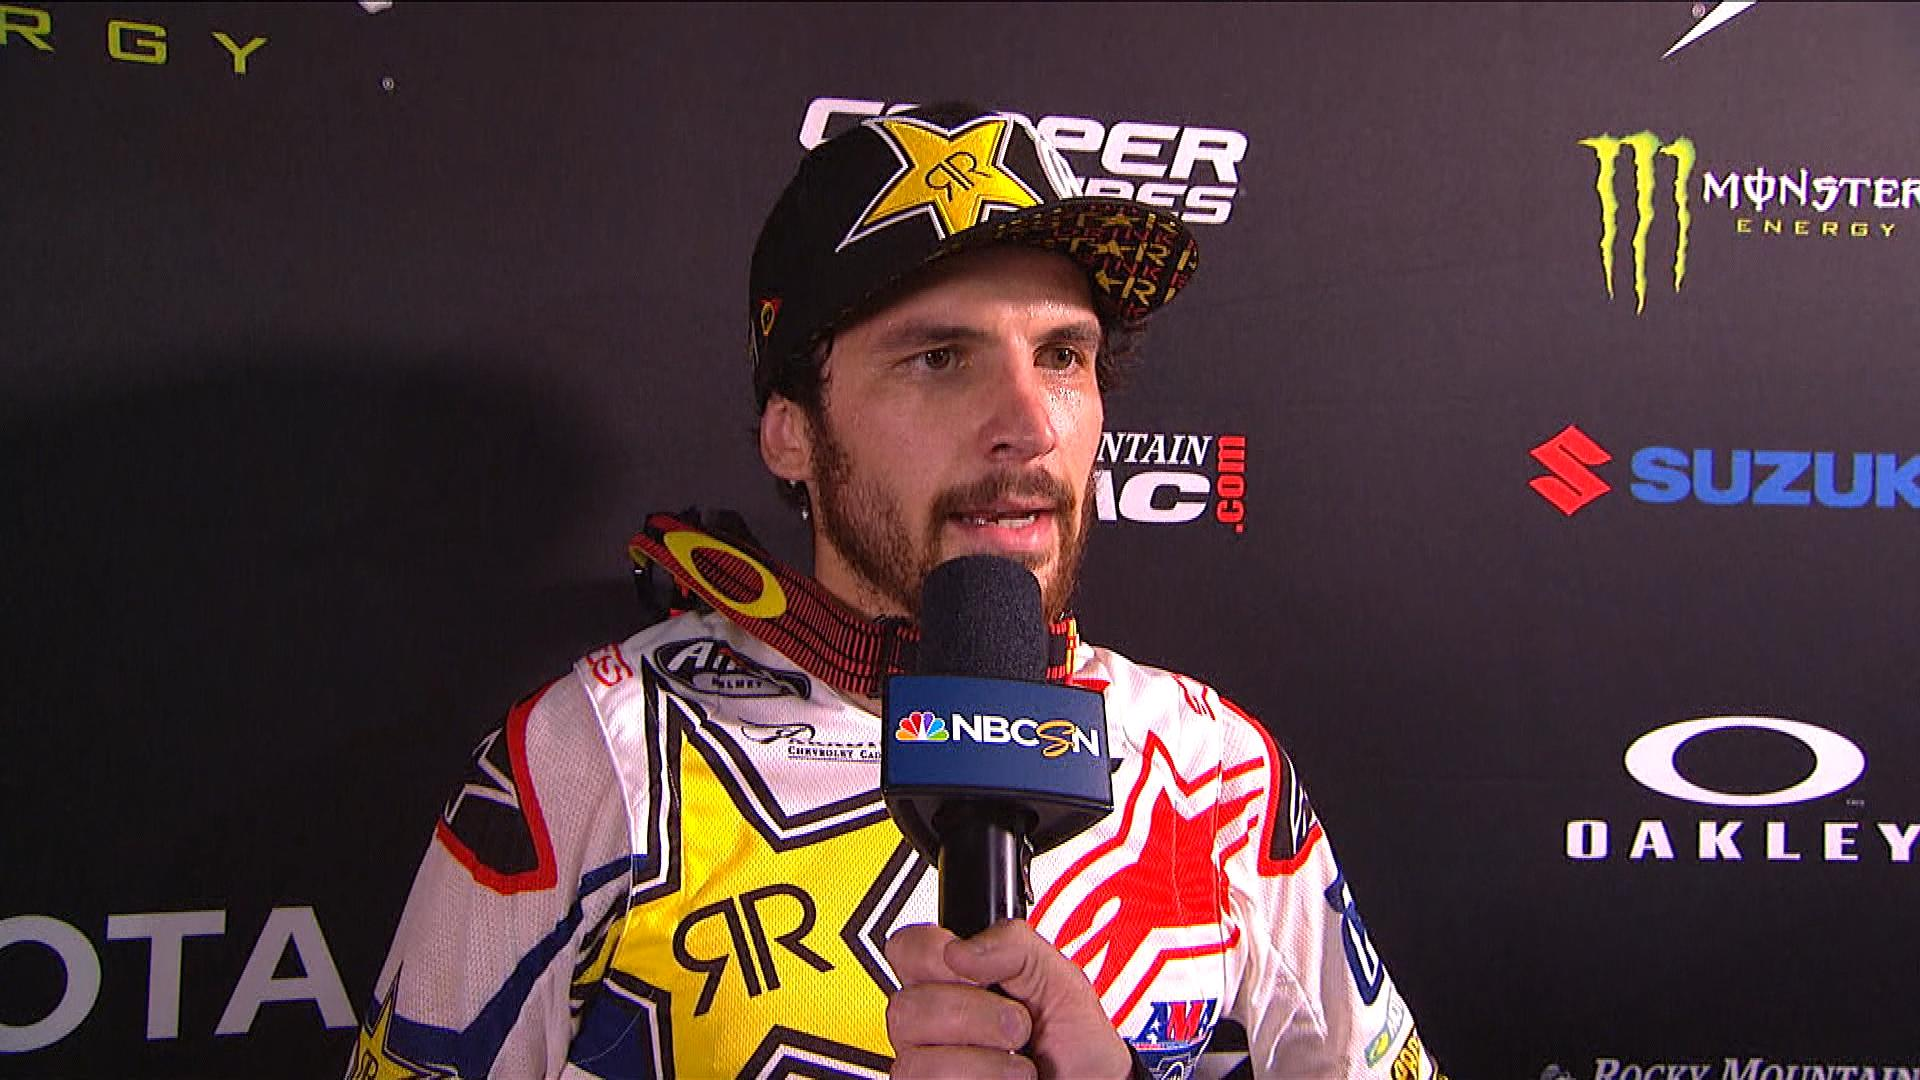 Jason Anderson Kind Of Embarred After Incident In Glendale Nbc Sports